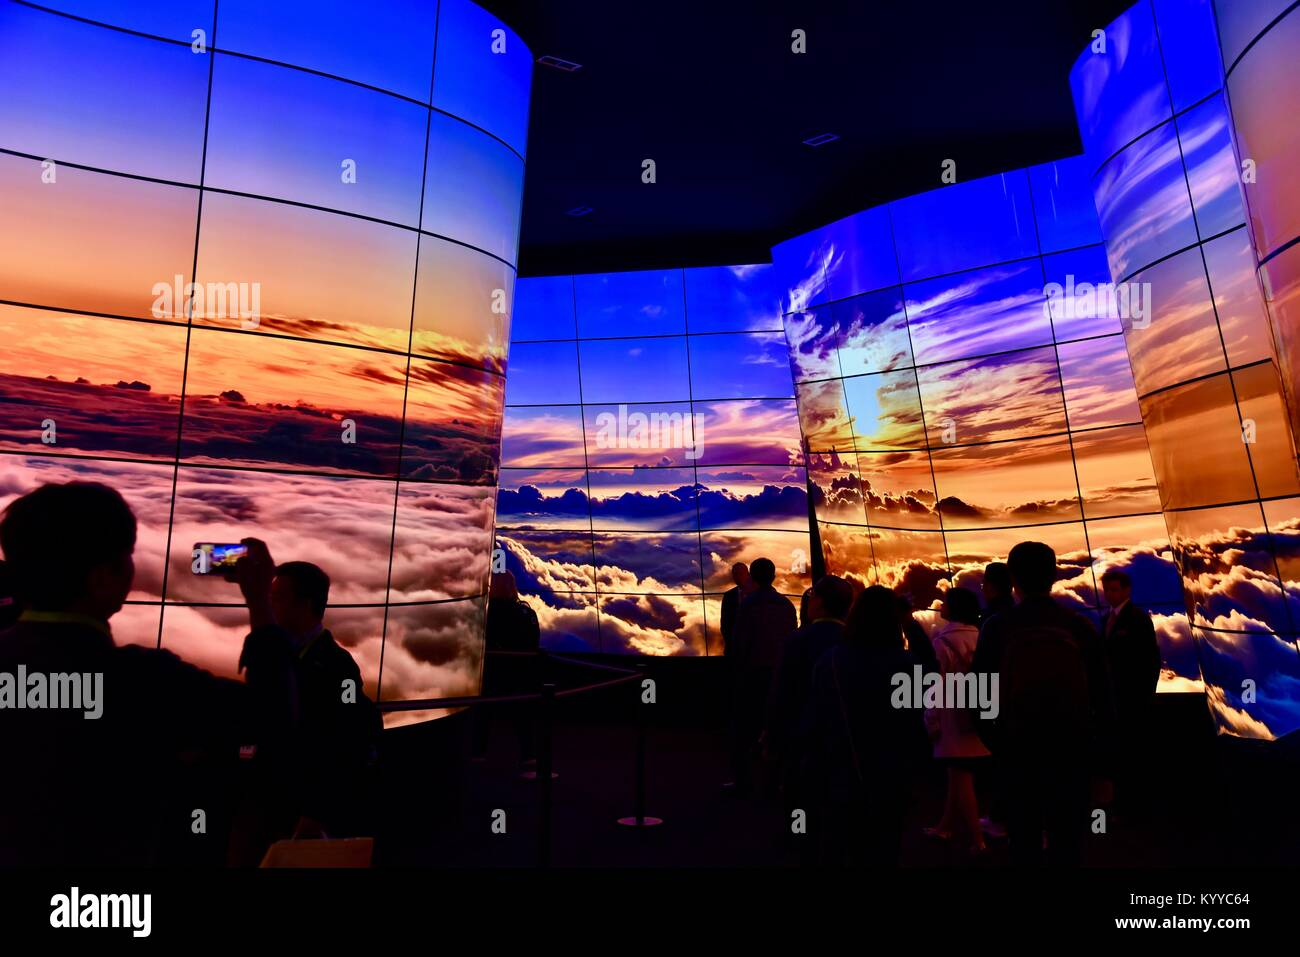 LG Electronics OLED 92-ft-long 'canyon display' of TVs at CES (Consumer Electronics Show), the world's largest - Stock Image